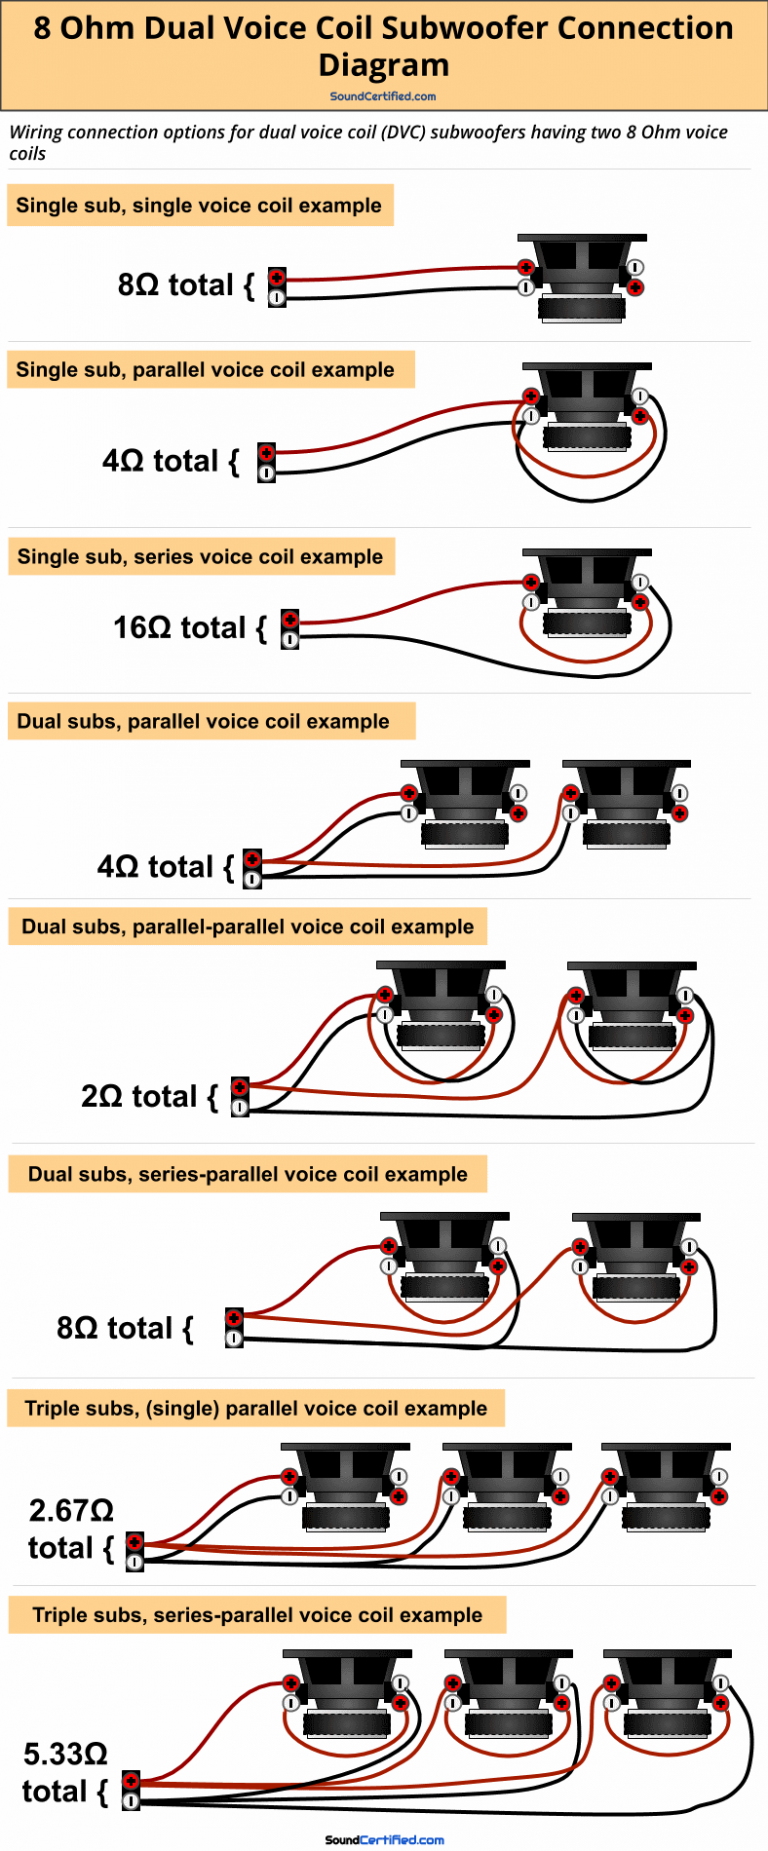 How To Wire A Dual Voice Coil Speaker Subwoofer Wiring Diagrams In 2020 Subwoofer Wiring Car Audio Subwoofers Electronics Mini Projects